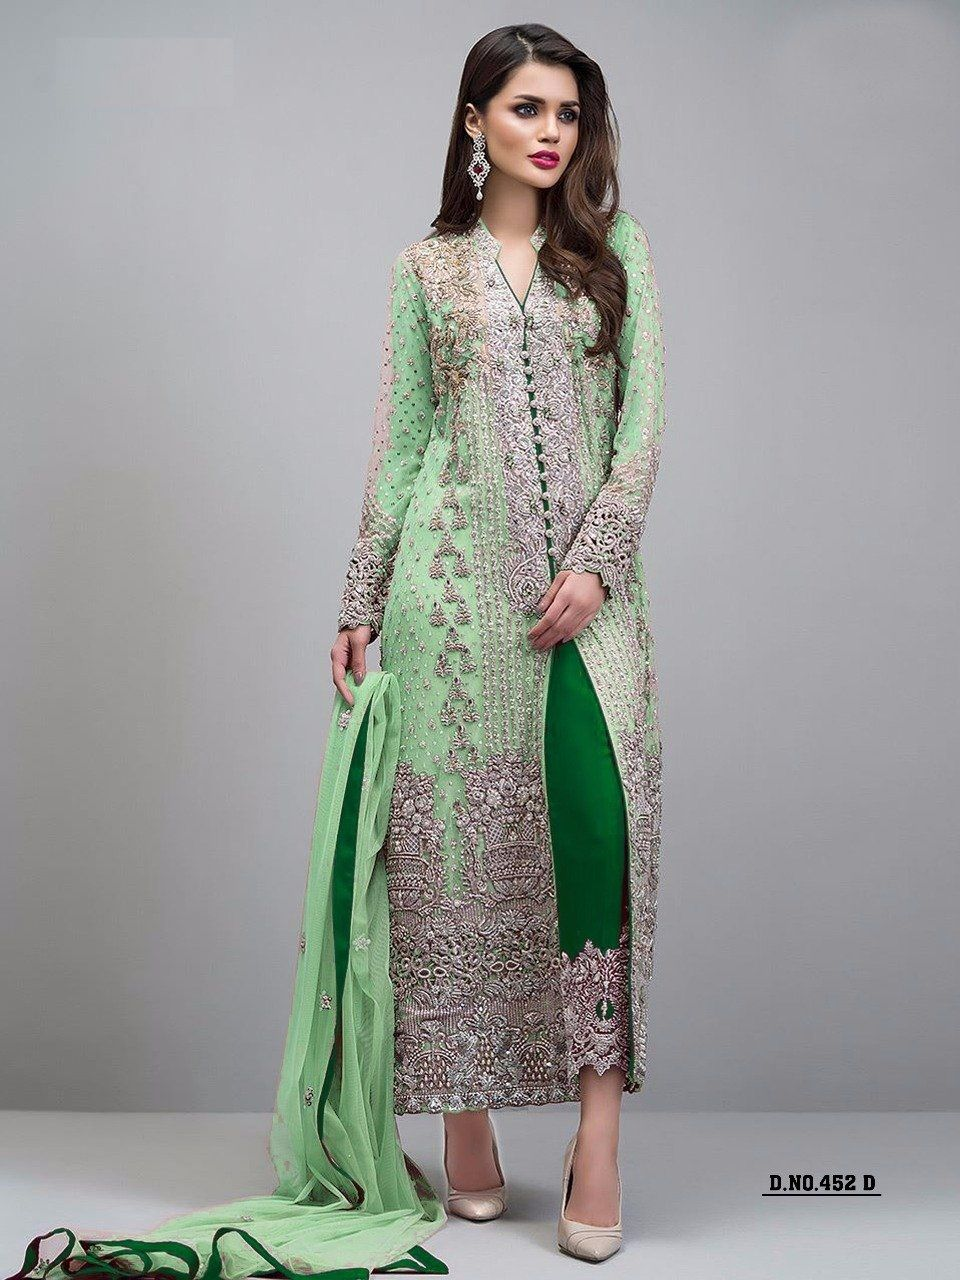 651b9f948f77 Embroidered With Diamond work Light Green Color Straight Pant Suit ...